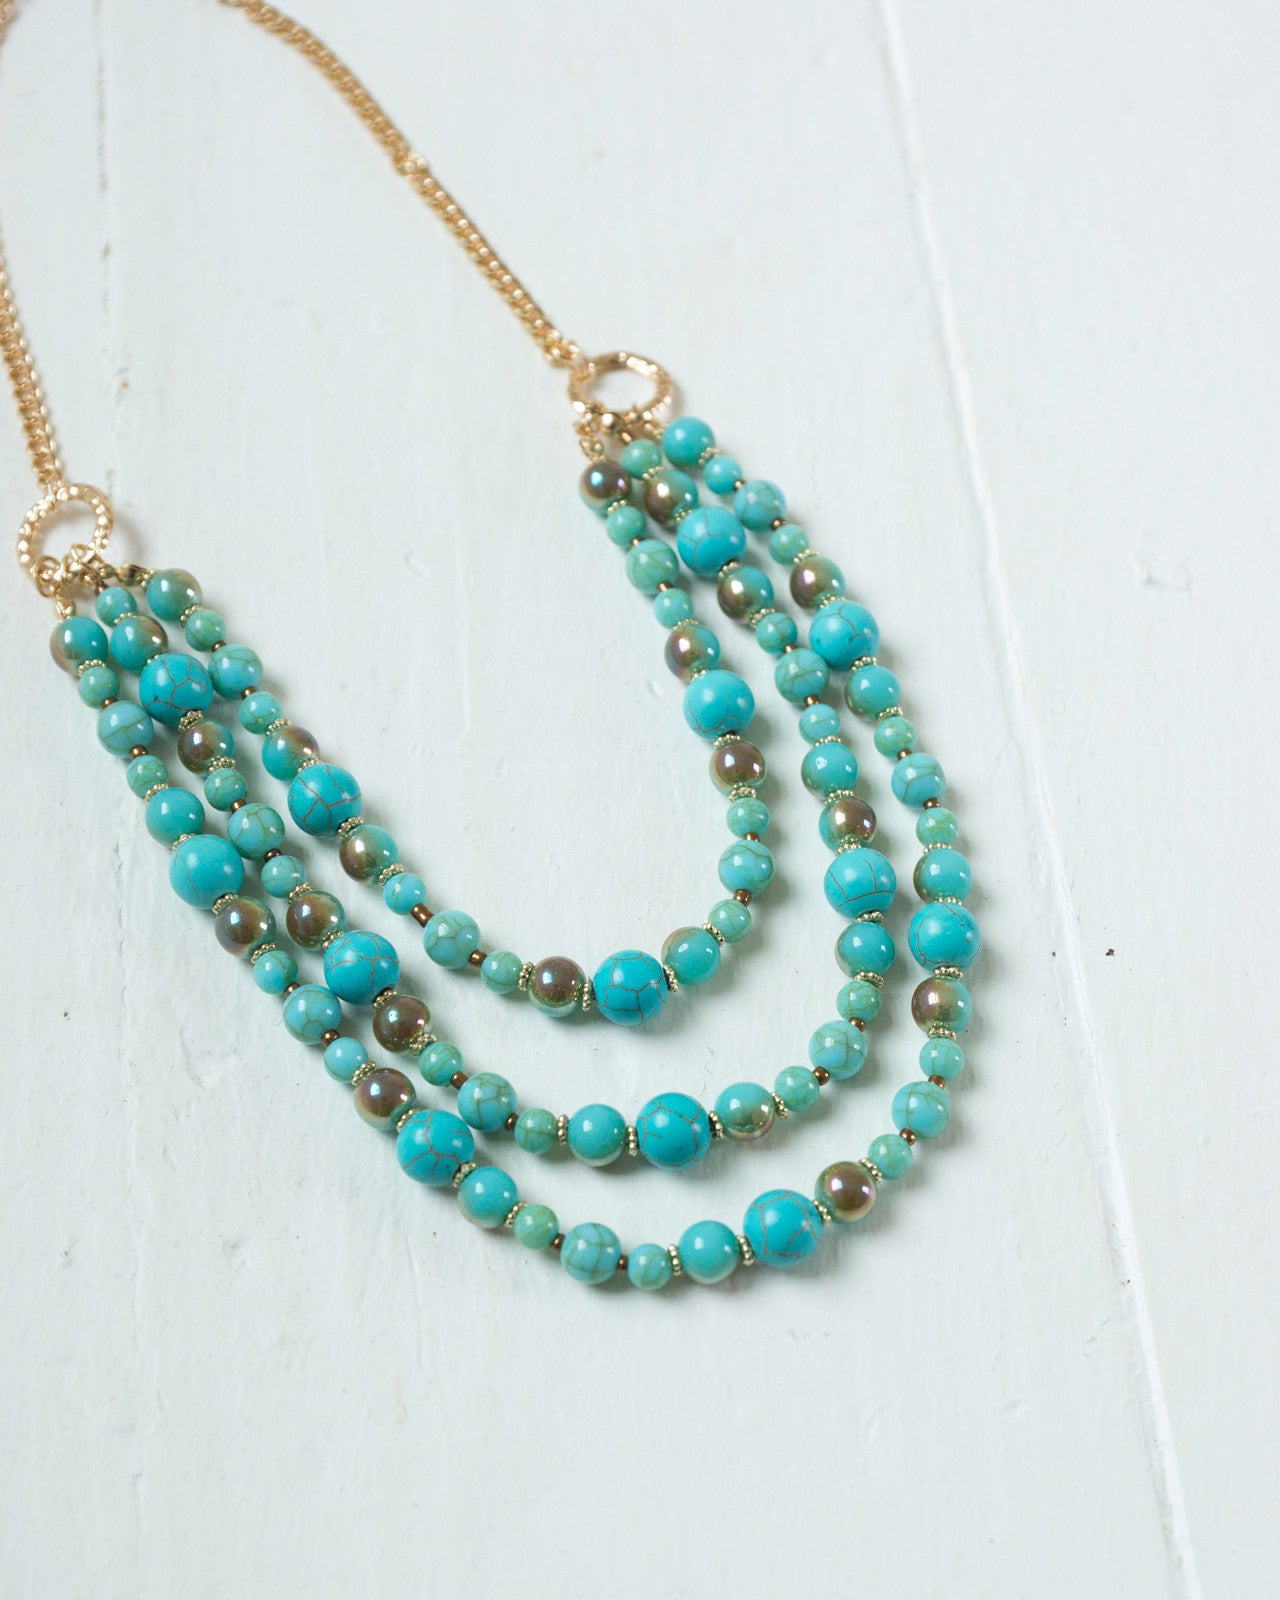 Turquoise Layered Beads Necklace | Rose & Remington